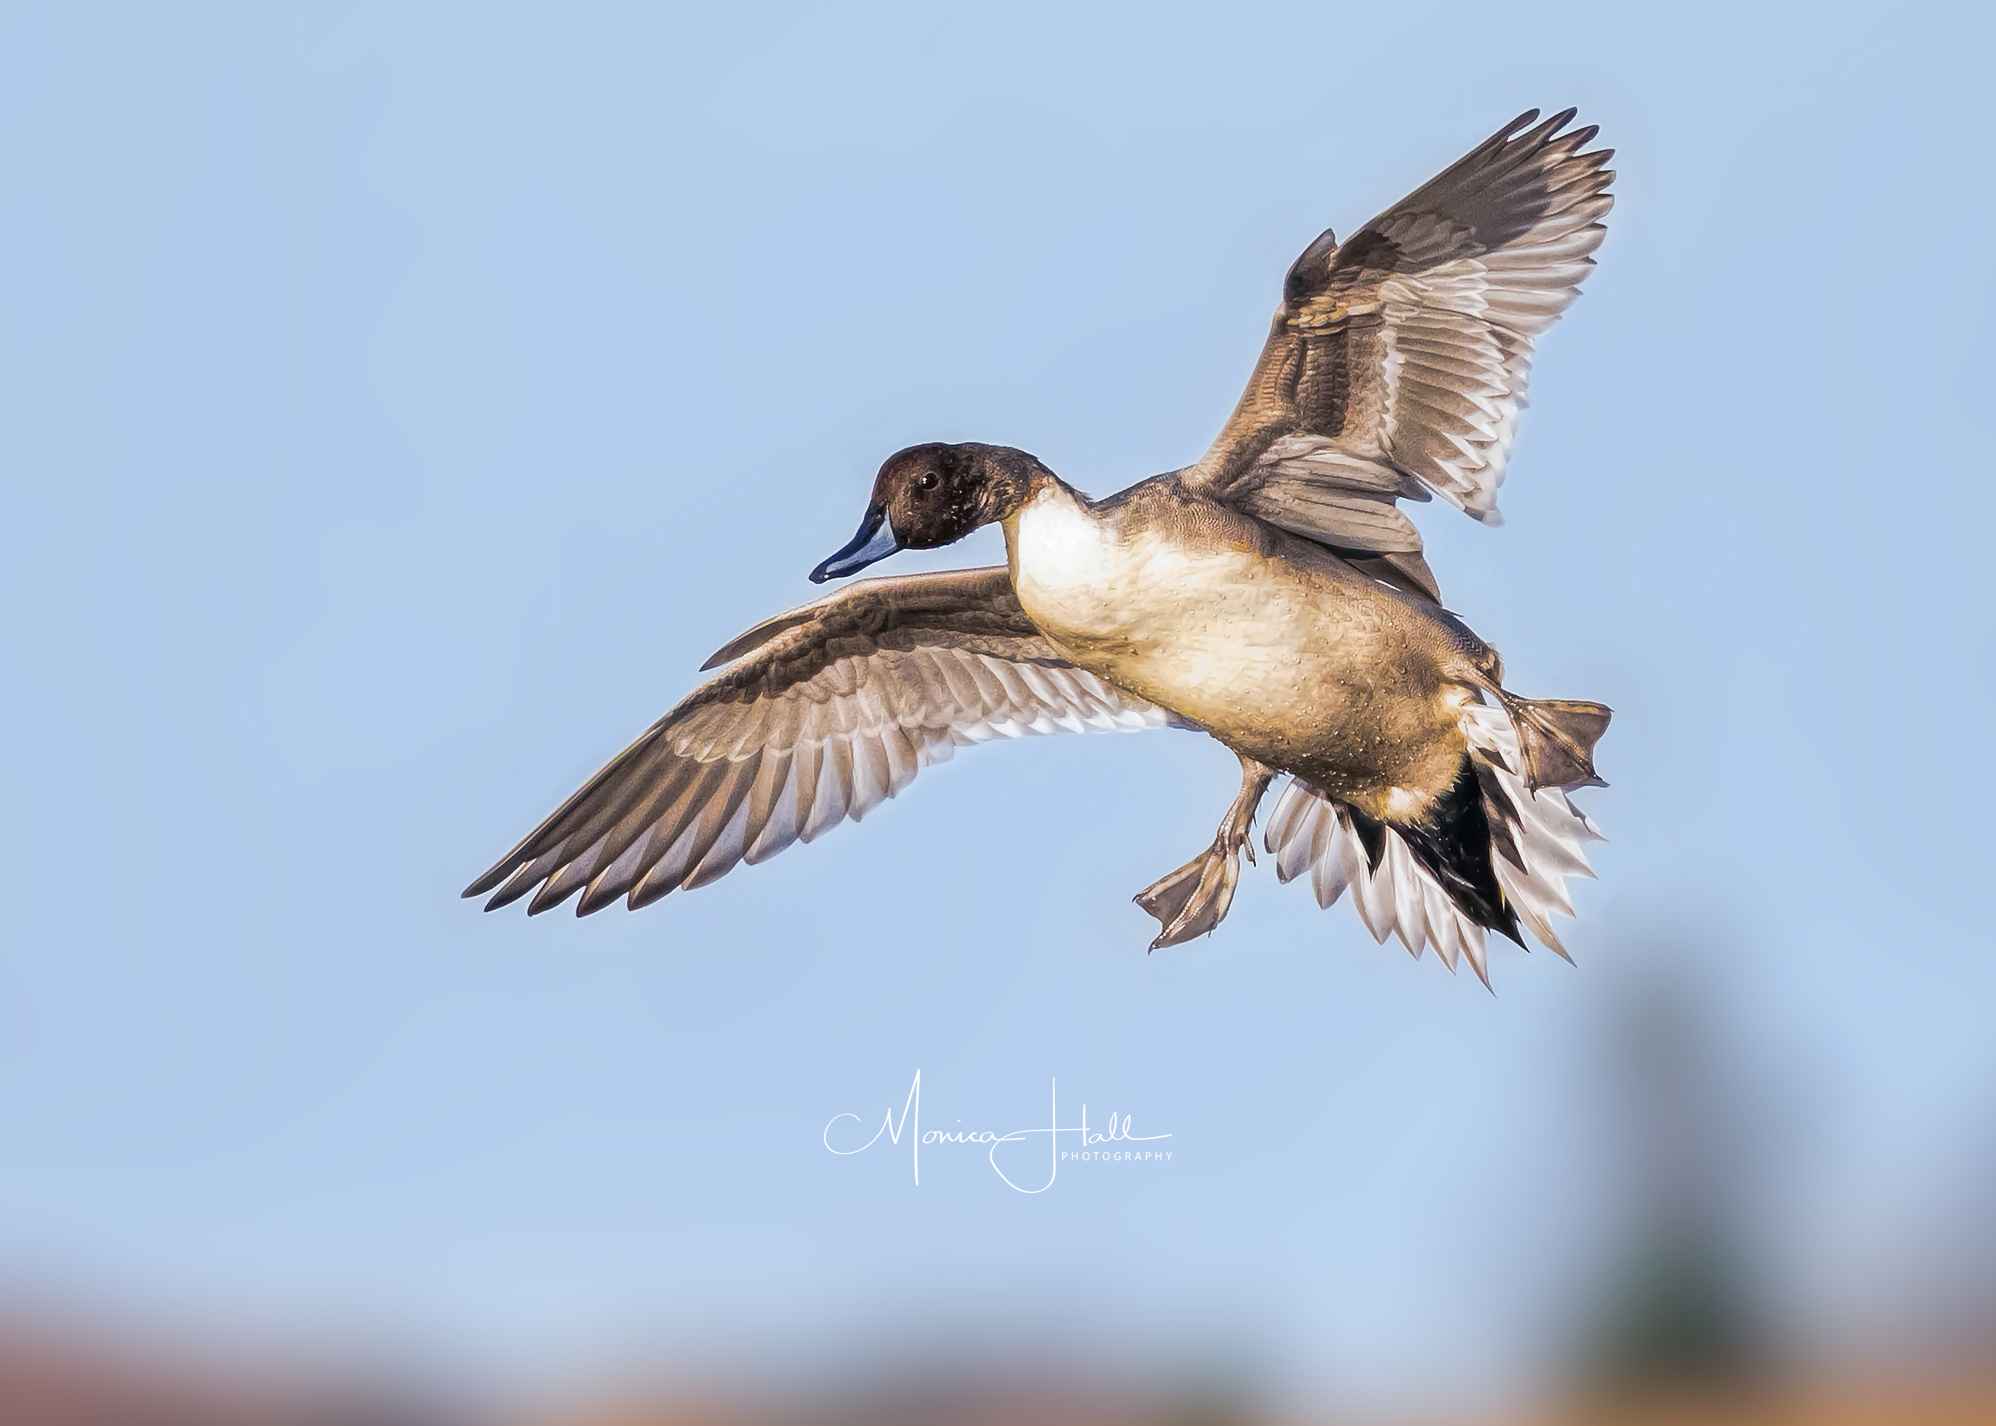 Northern pintail, photo by Monica Hall